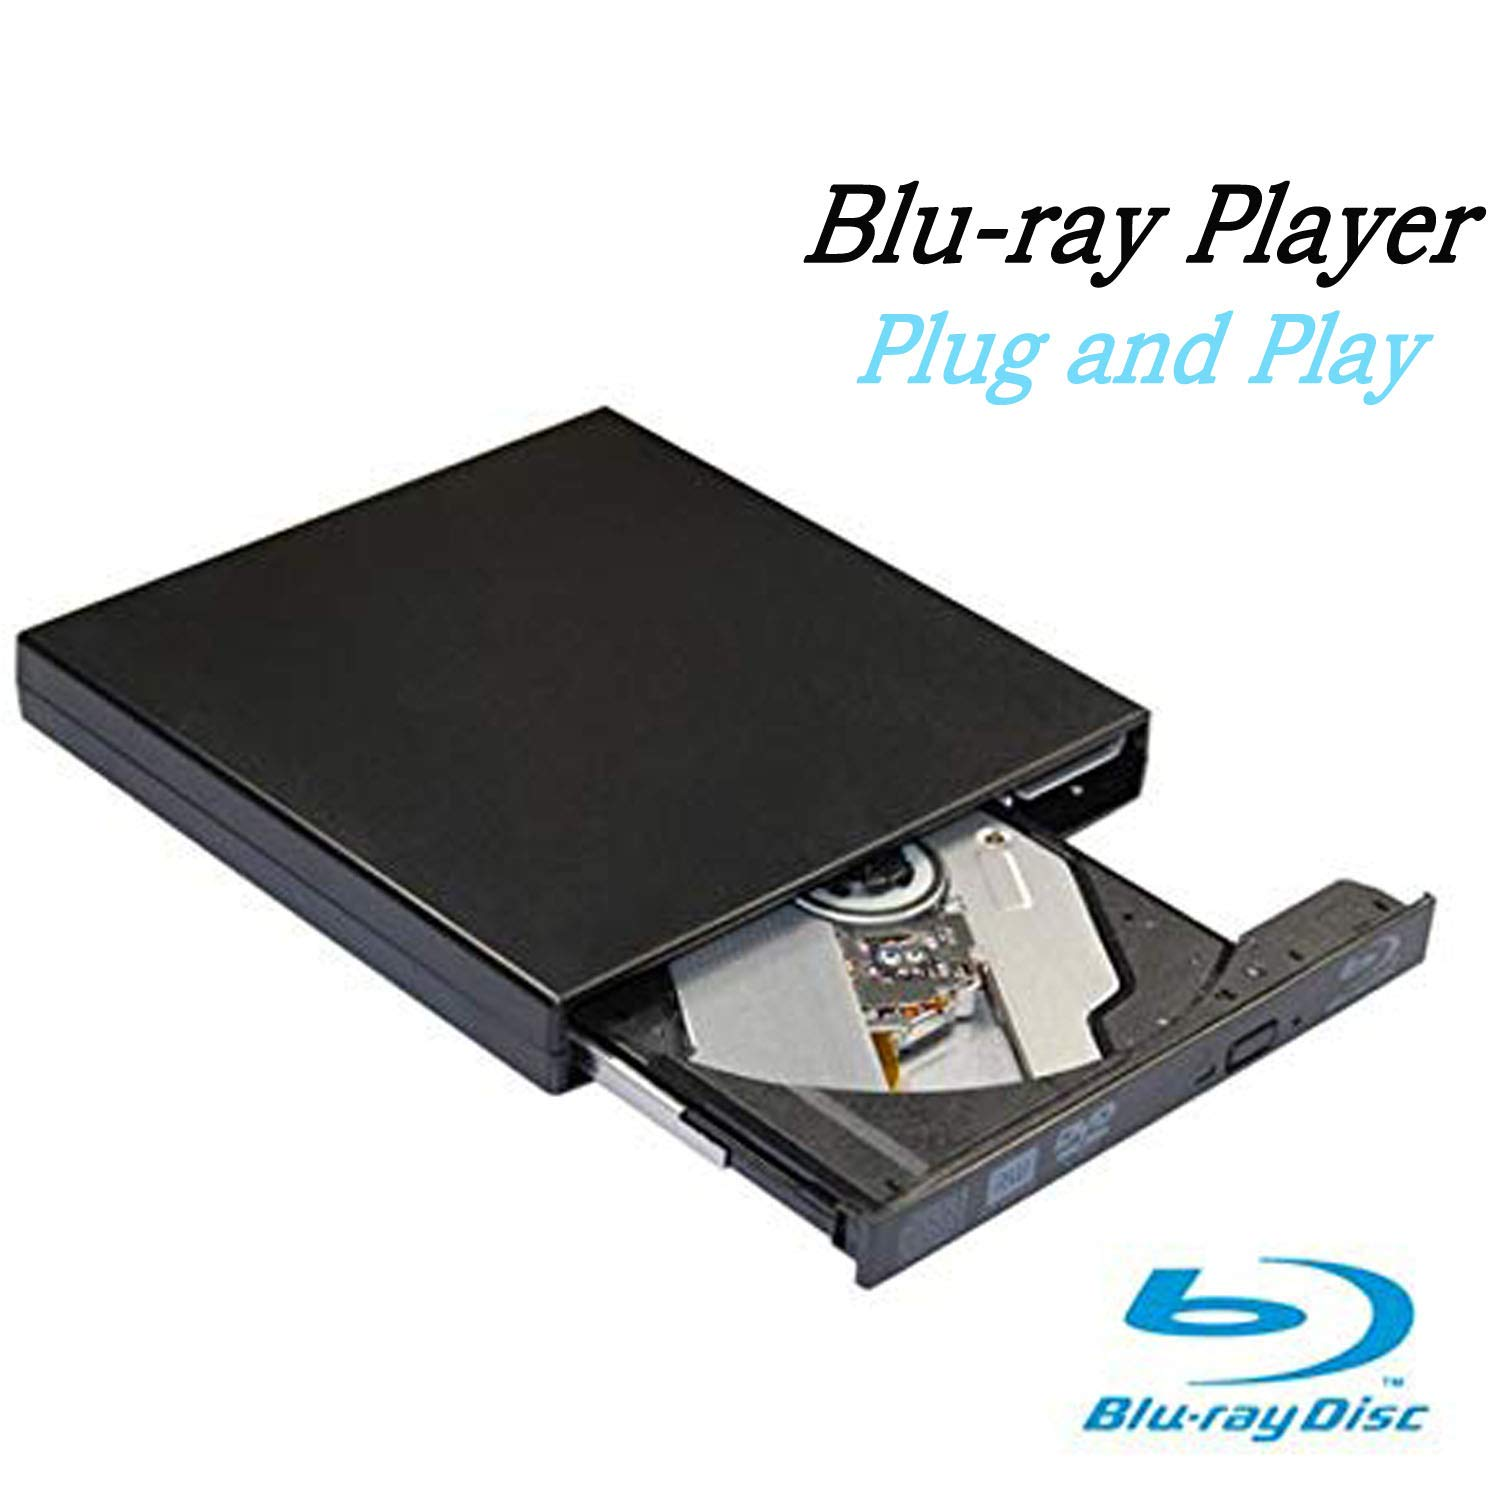 Ploveyy Blu-Ray Drive USB External Portable DVD Burner BD-ROM DVD/CD-RW/ROM Writer for Windows 2000/XP/Vista/Win 7/Win 8/Win 10 Notebook PC Desktop Computer,Plug and Play (Black) by Ploveyy (Image #1)